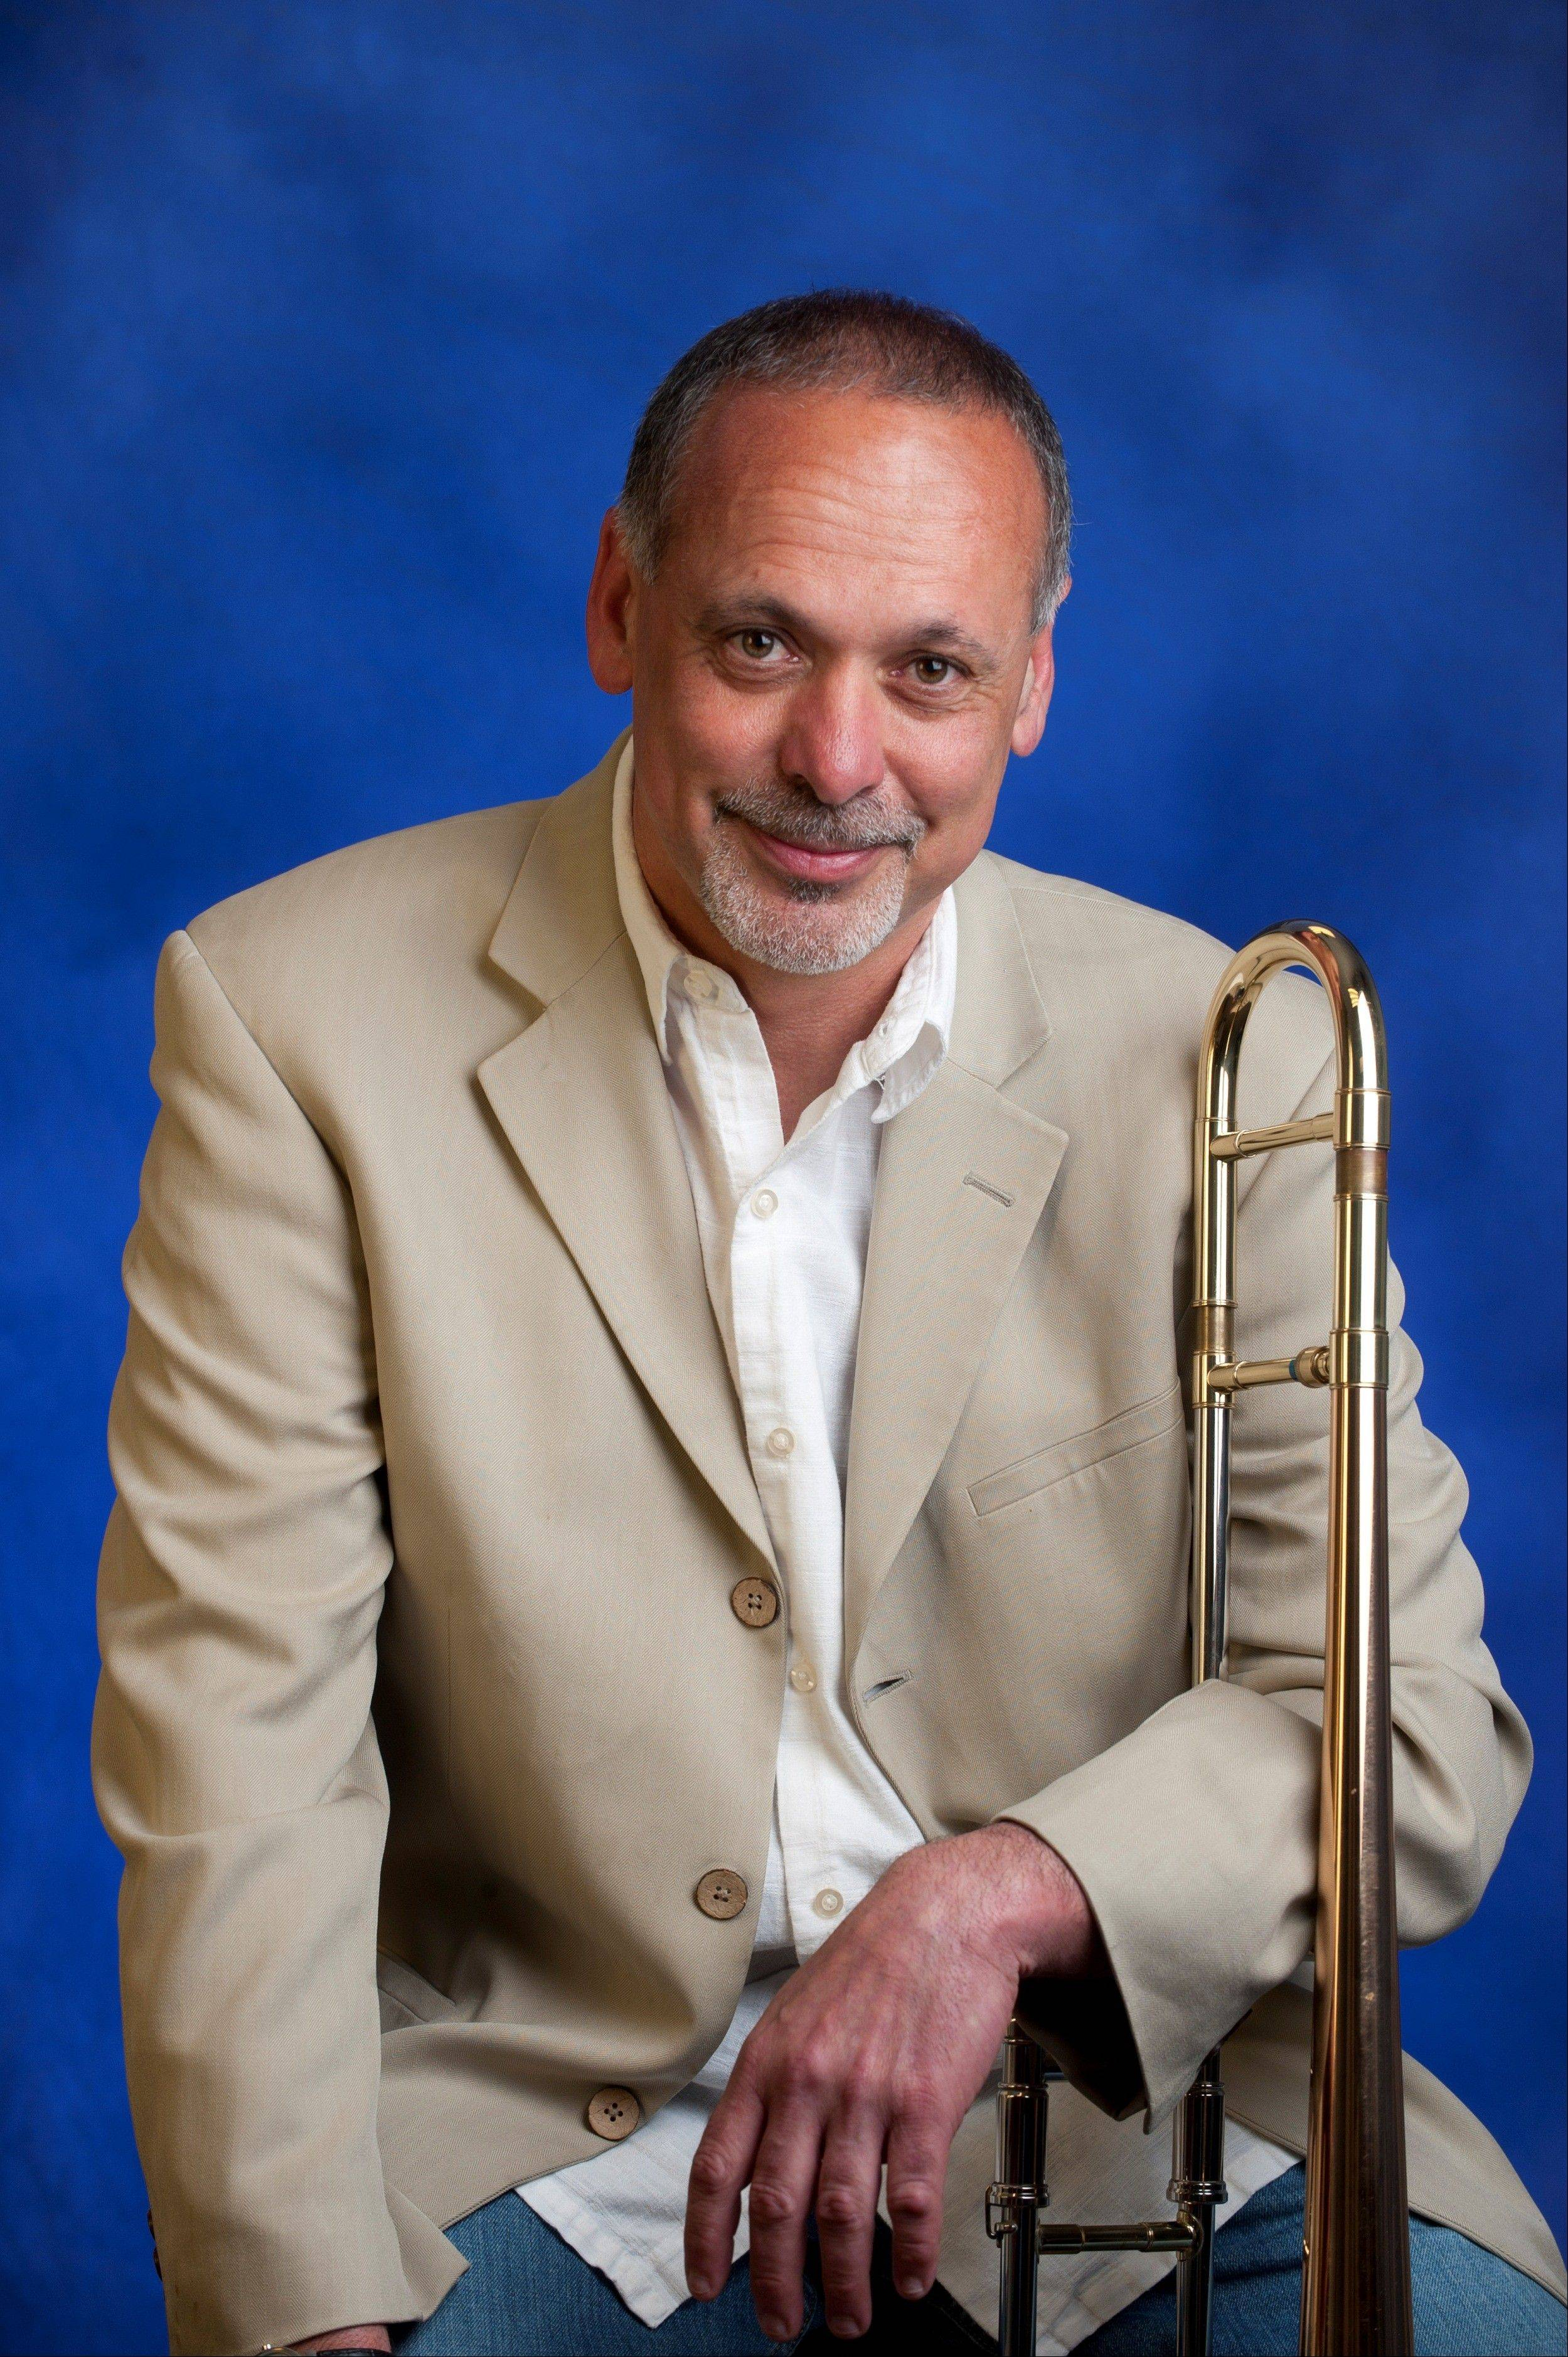 Elgin Community College's own Mark Bettcher, trombonist extraordinaire, will entertain in the Arts Center on Saturday, March 3.